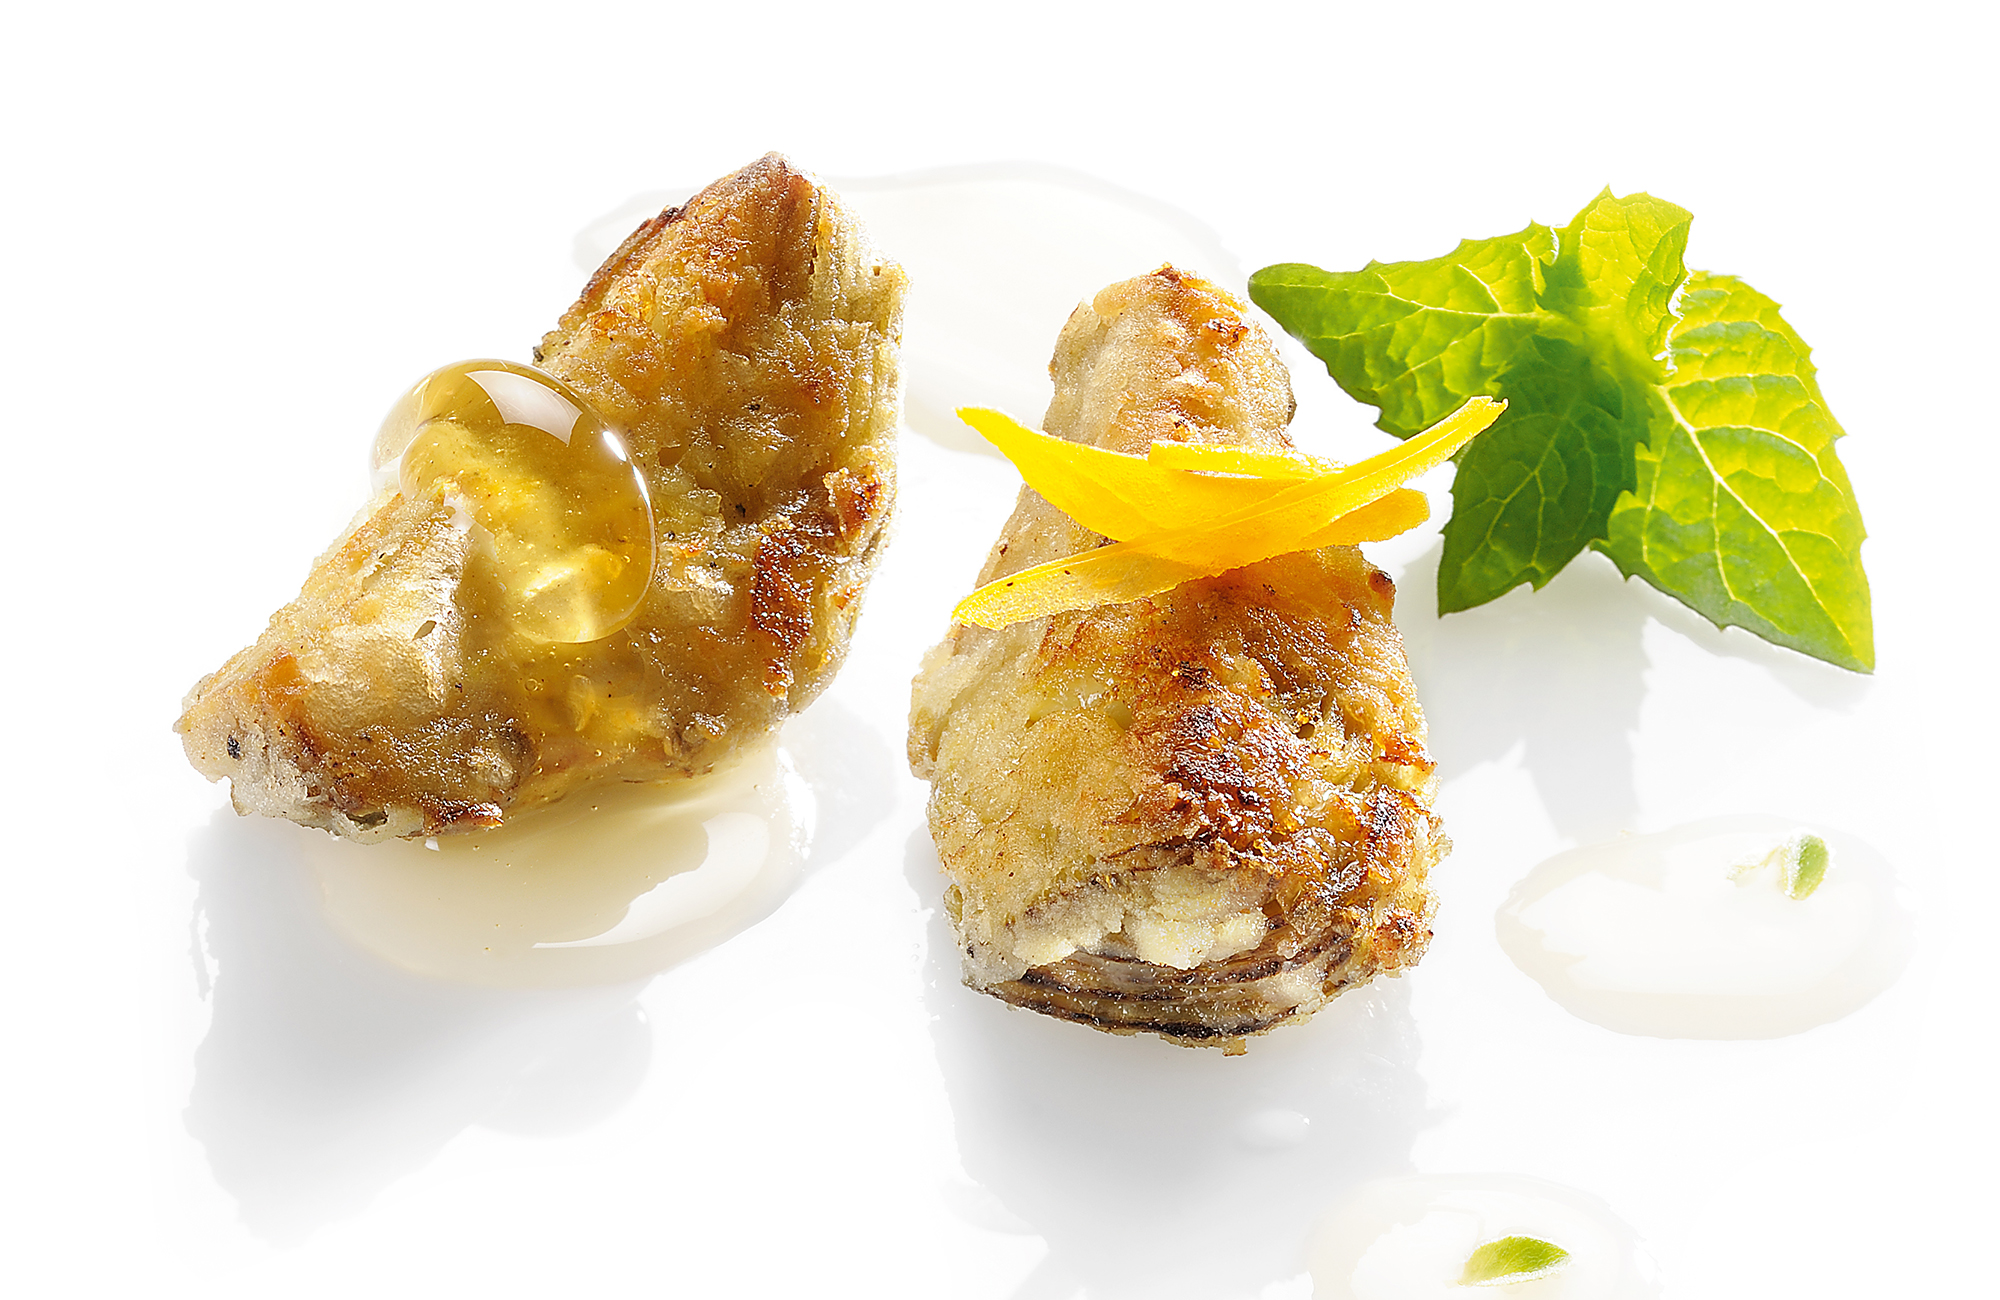 Pepper and Lemon Zero Olio Artichokes fried with honey and Organic White Wine Vinegar 100% Italian - Ponti